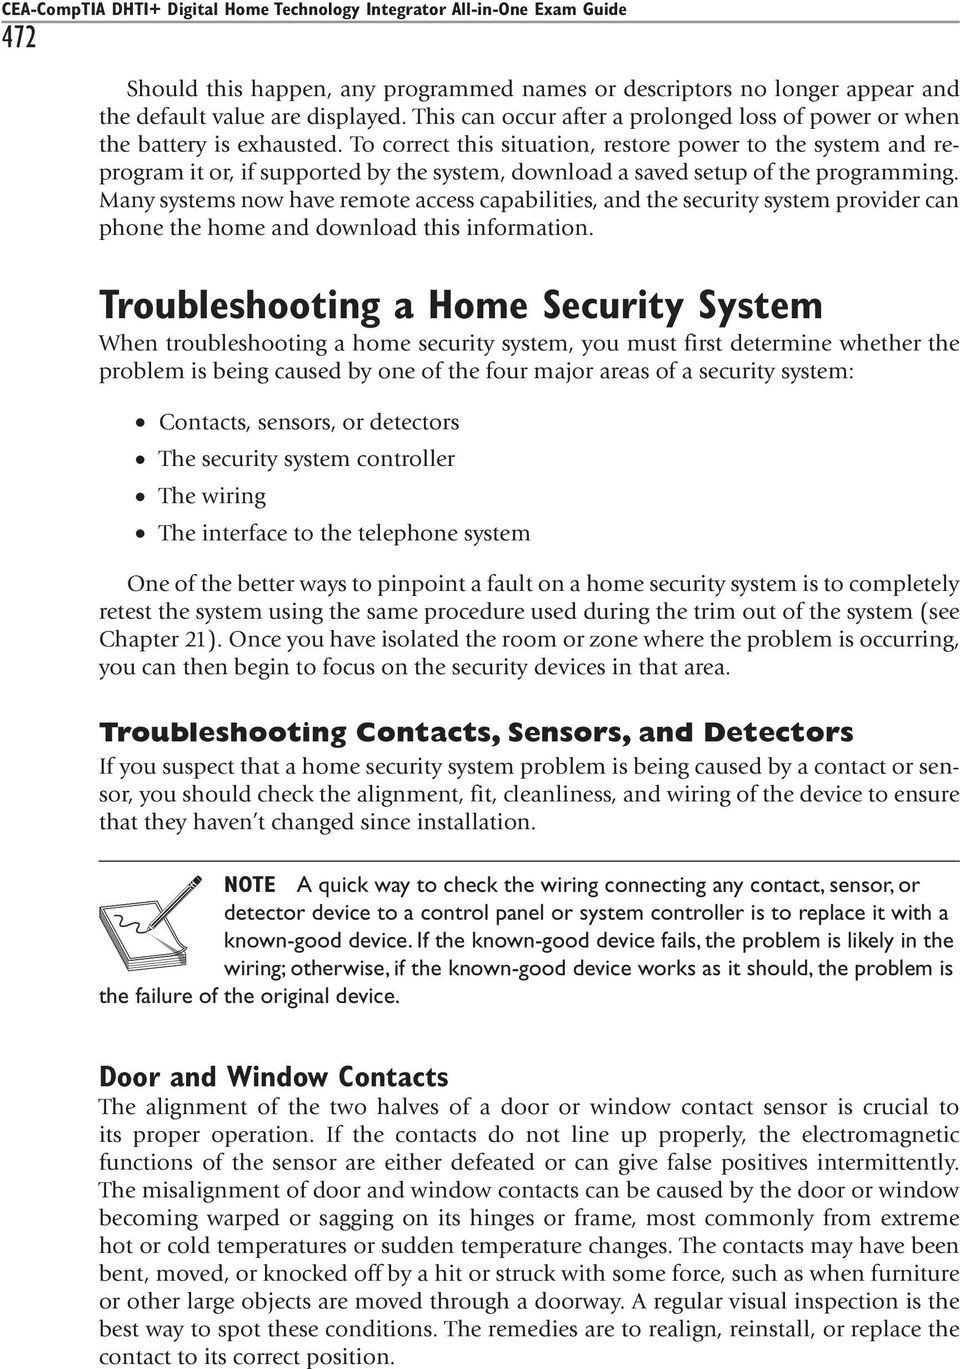 Monitoring And Troubleshooting A Home Security System Pdf Contacts Wiring Series To Correct This Situation Restore Power The Reprogram It Or If